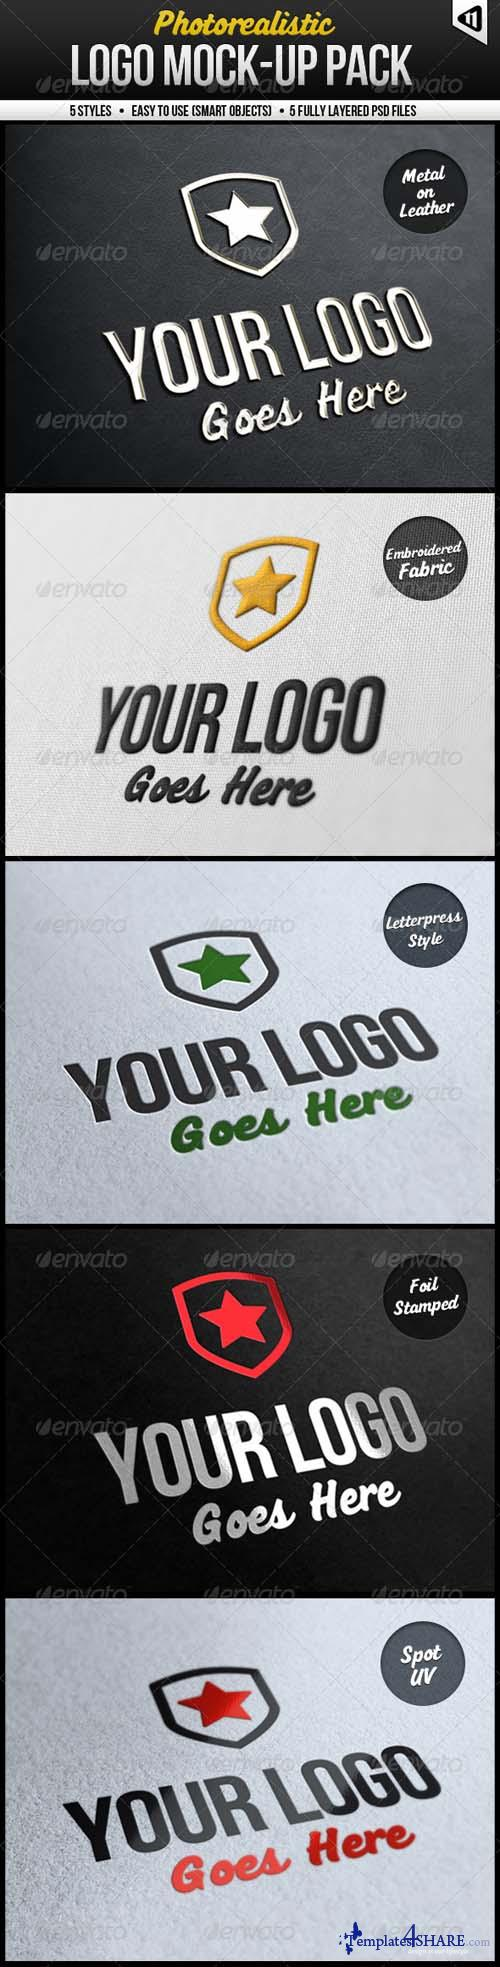 Graphicriver Photorealistic Logo Mock-Up Pack - REUPLOAD